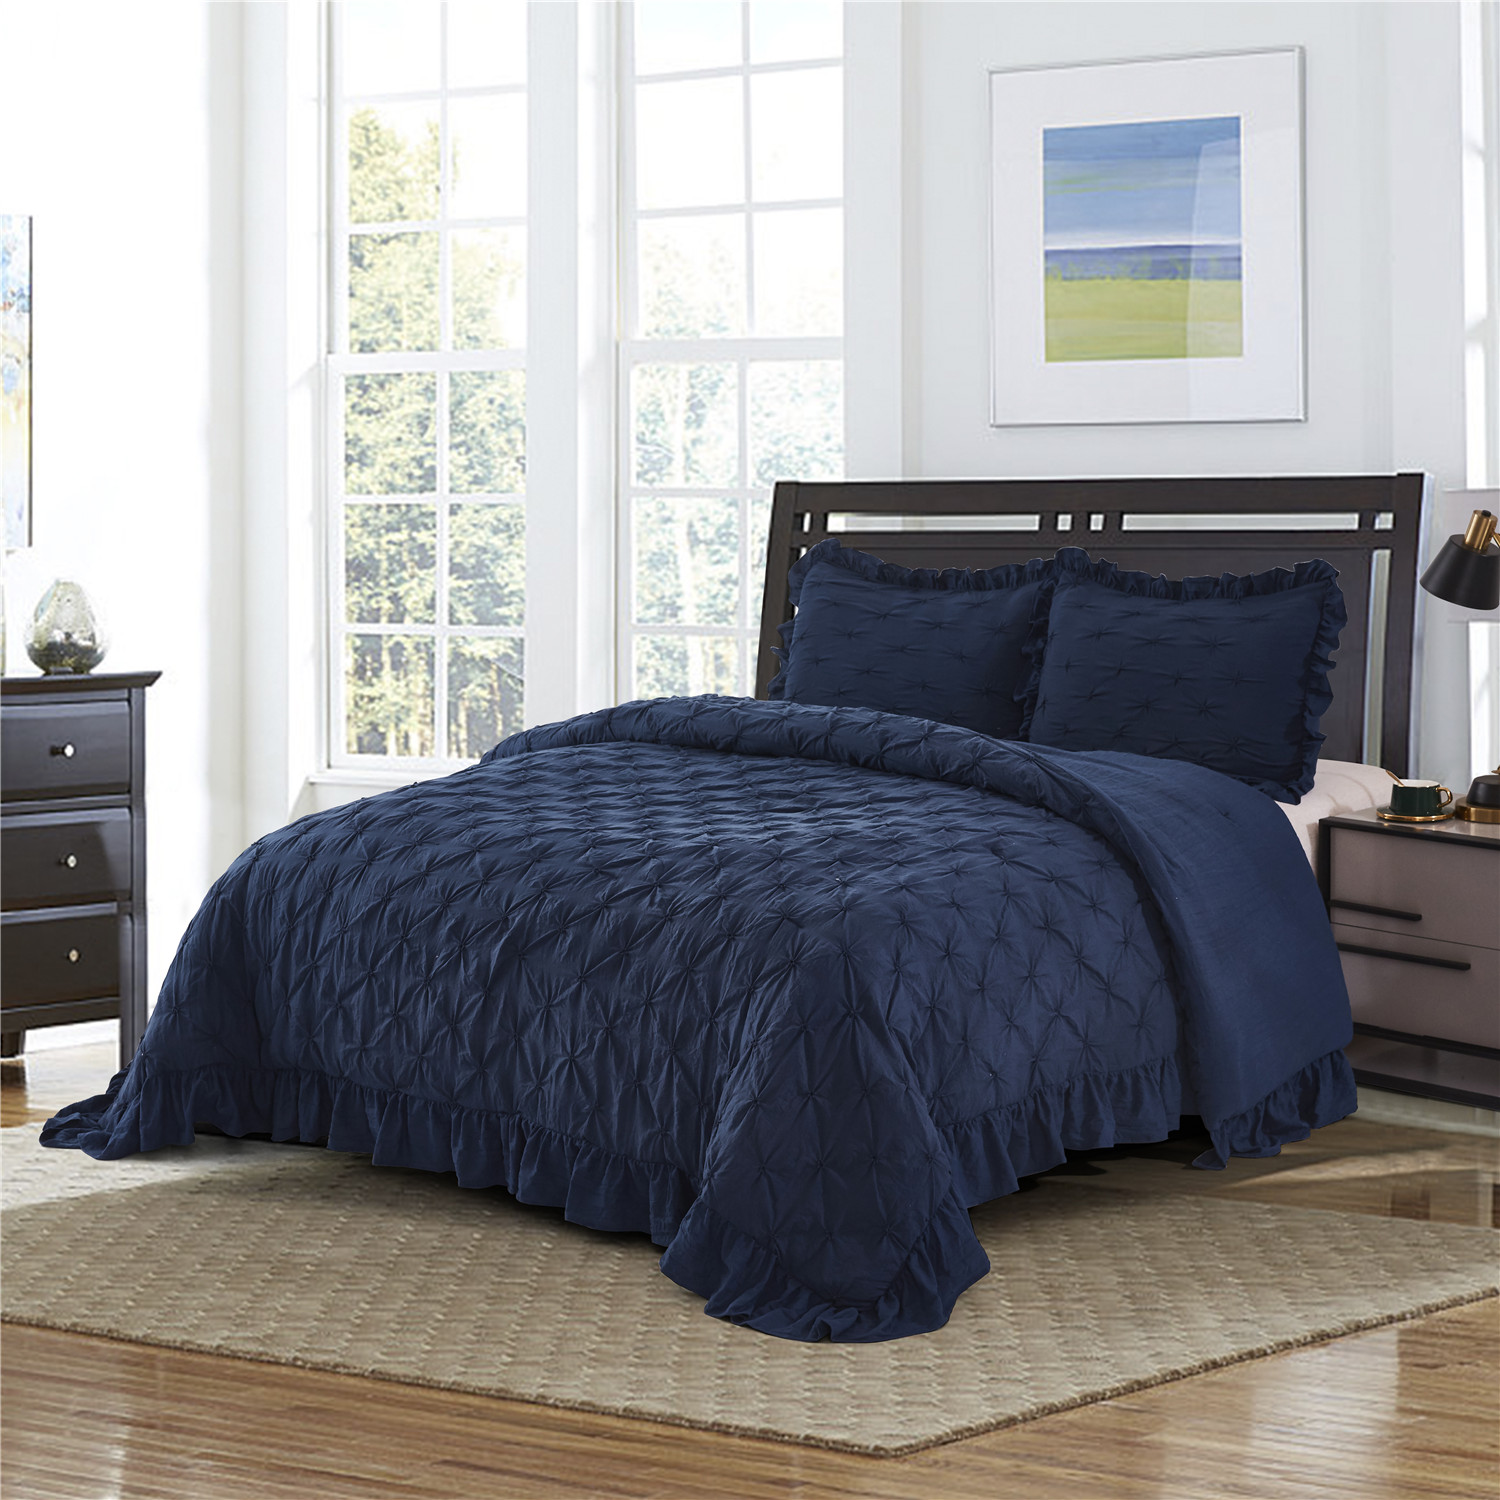 3 Piece Pinch Pleated Navy Blue Comforter Set King Pintuck Ruffled Super Soft Hypoallergenic Prewashed Microfiber Shabby Chic Farmhouse Style Bedding Jk Brianna King Navy Walmart Com Walmart Com